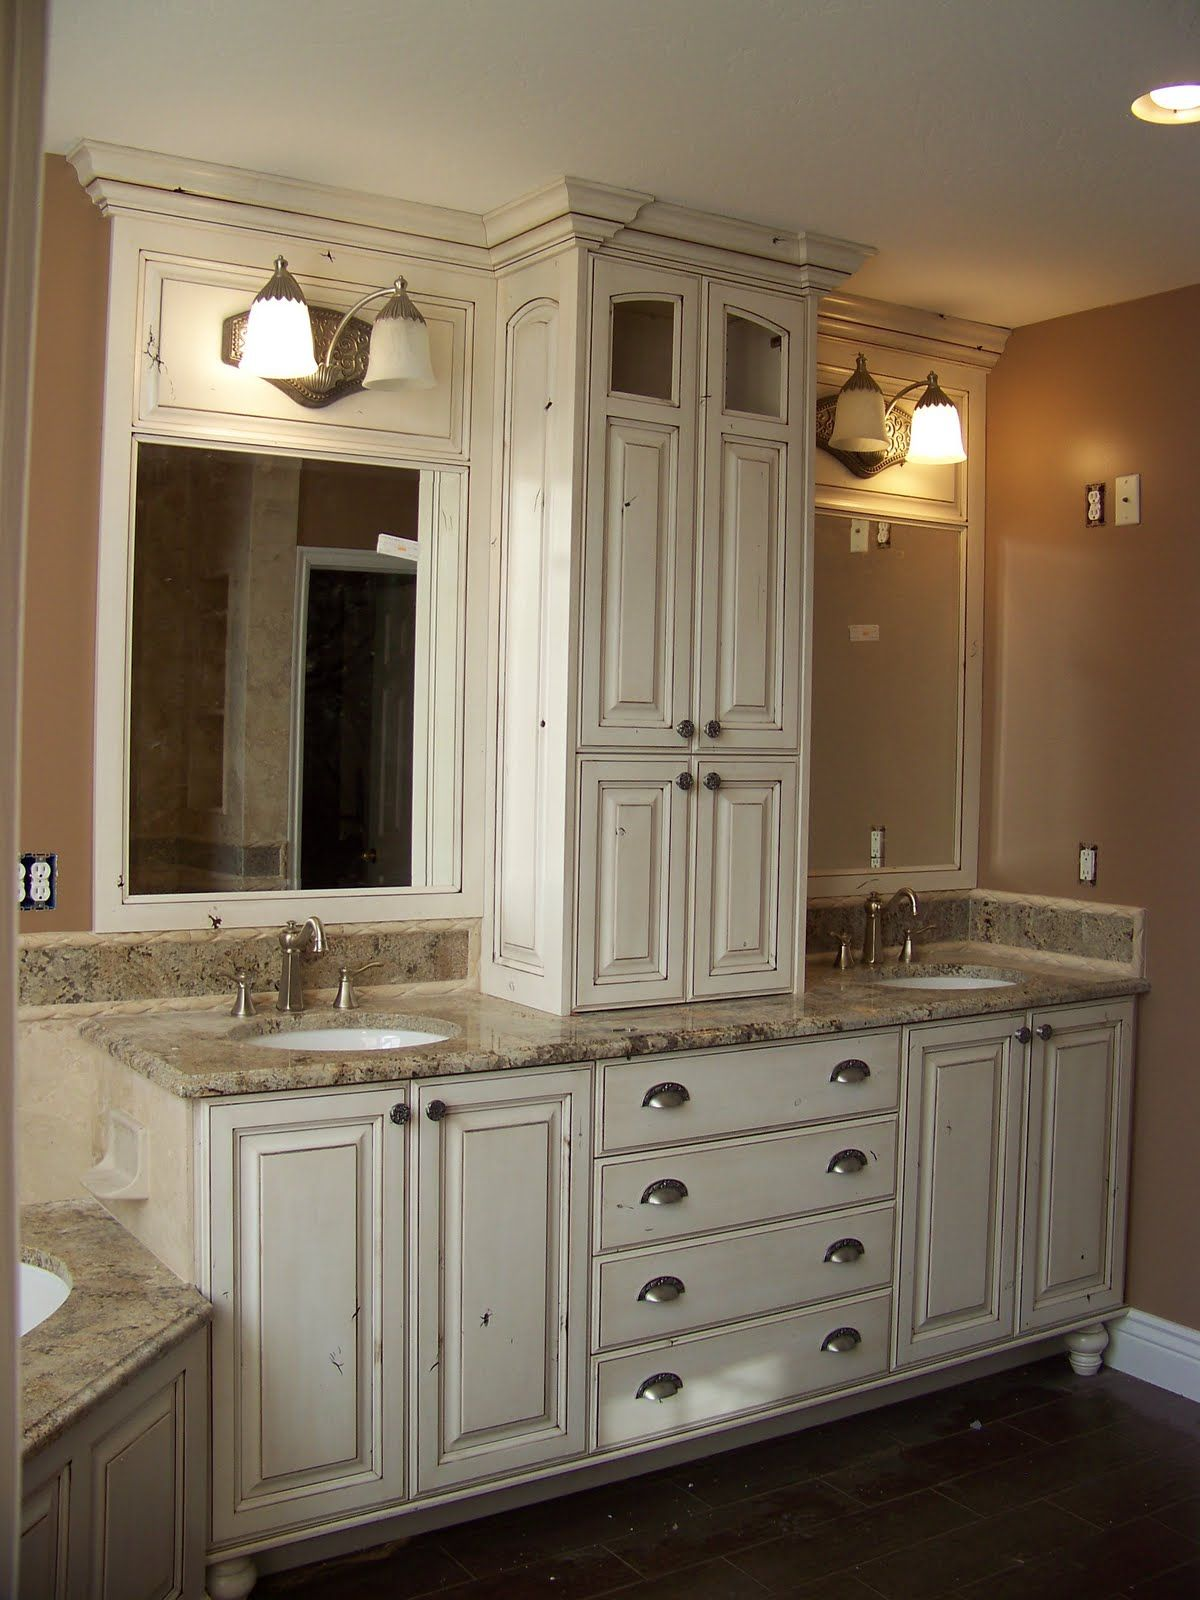 White Bathroom Vanity Ideas How To Get Rid Of White Bumps On Arms Randolph Place